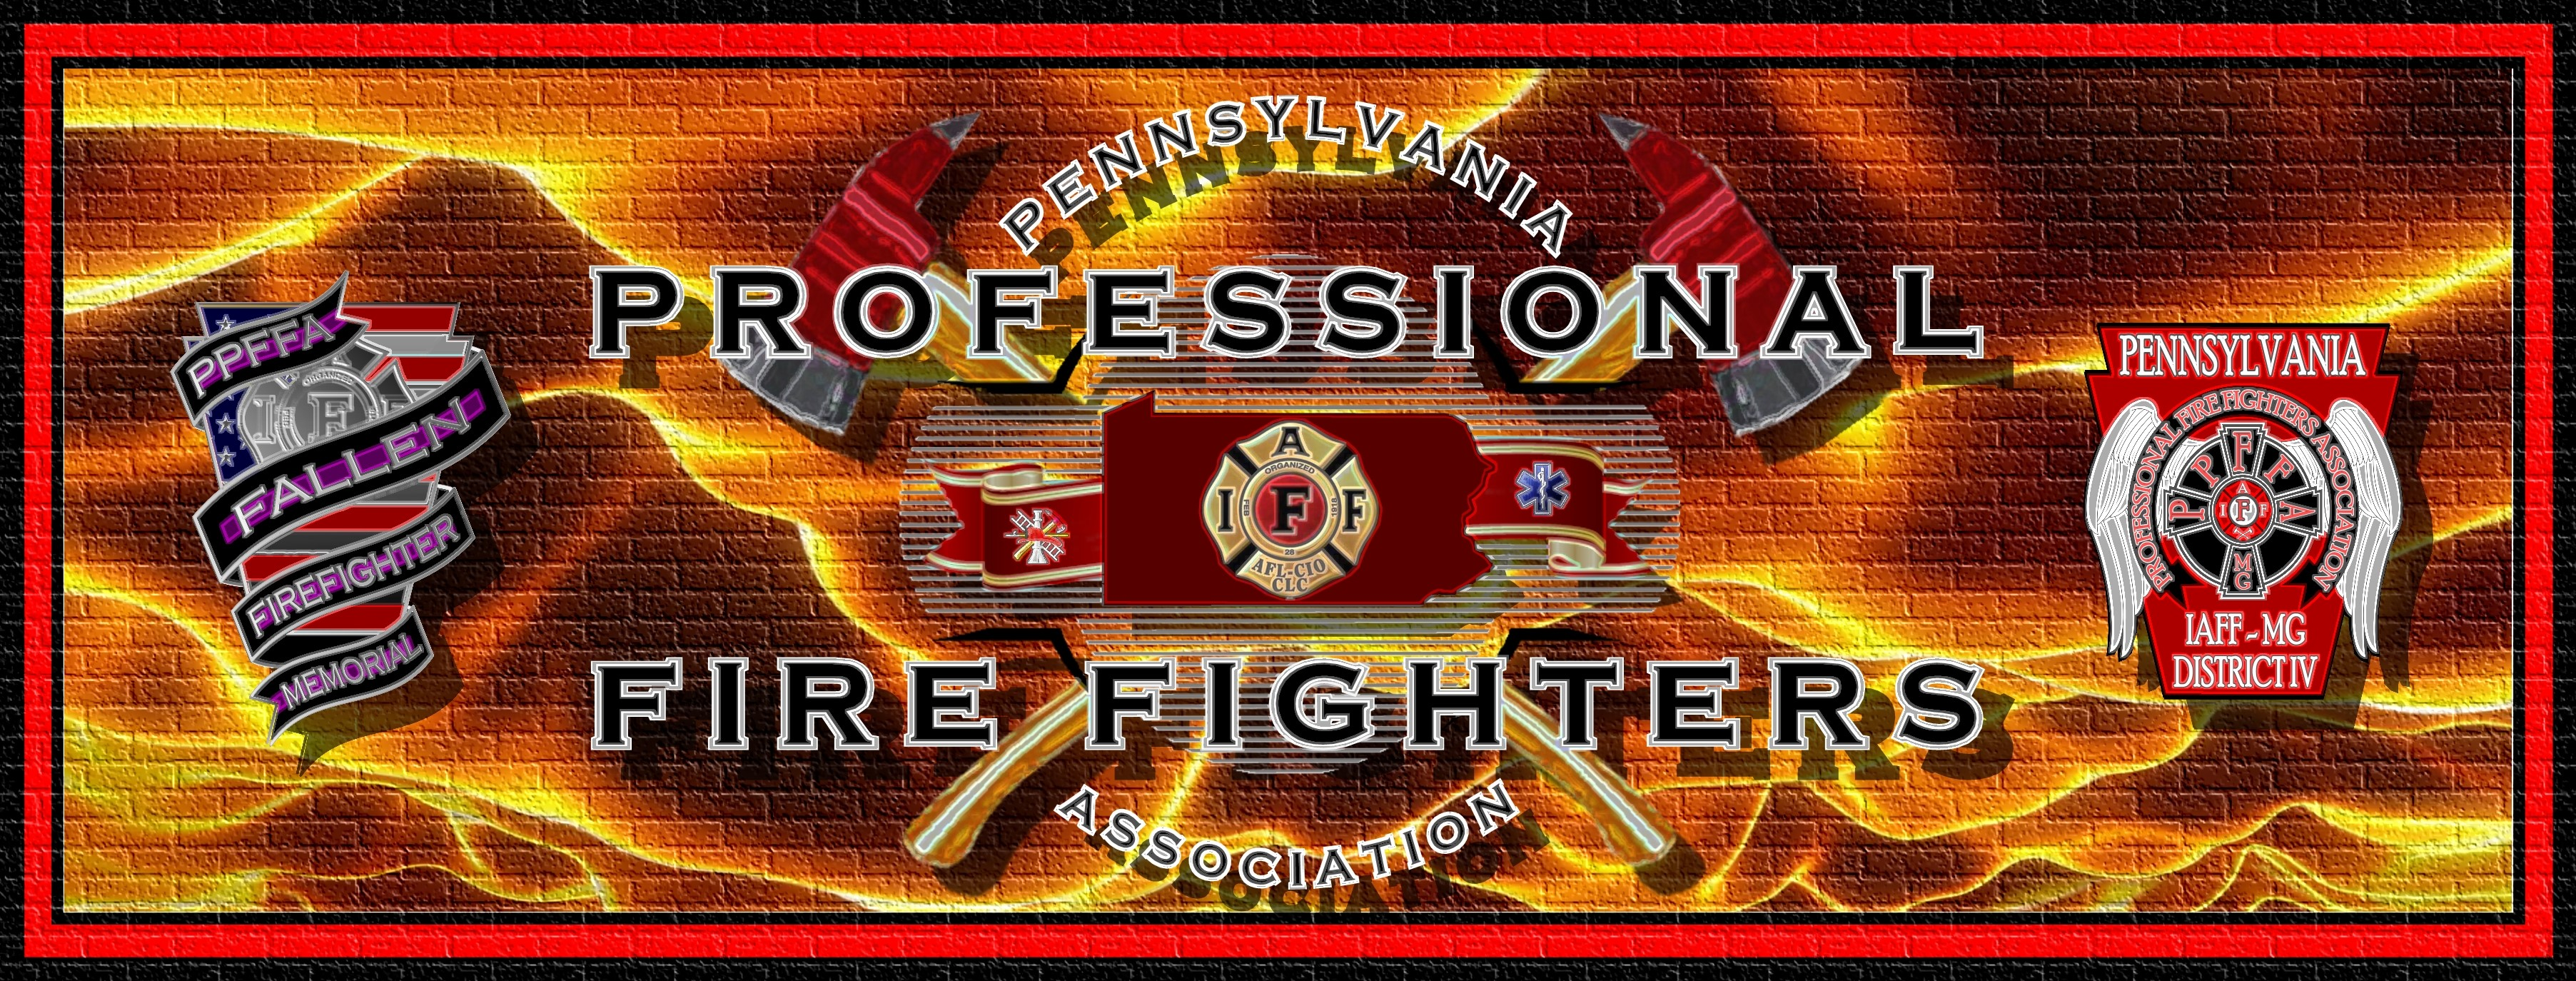 Fire Captain Cover Letter Pa Prof Fire Fighters Assoc